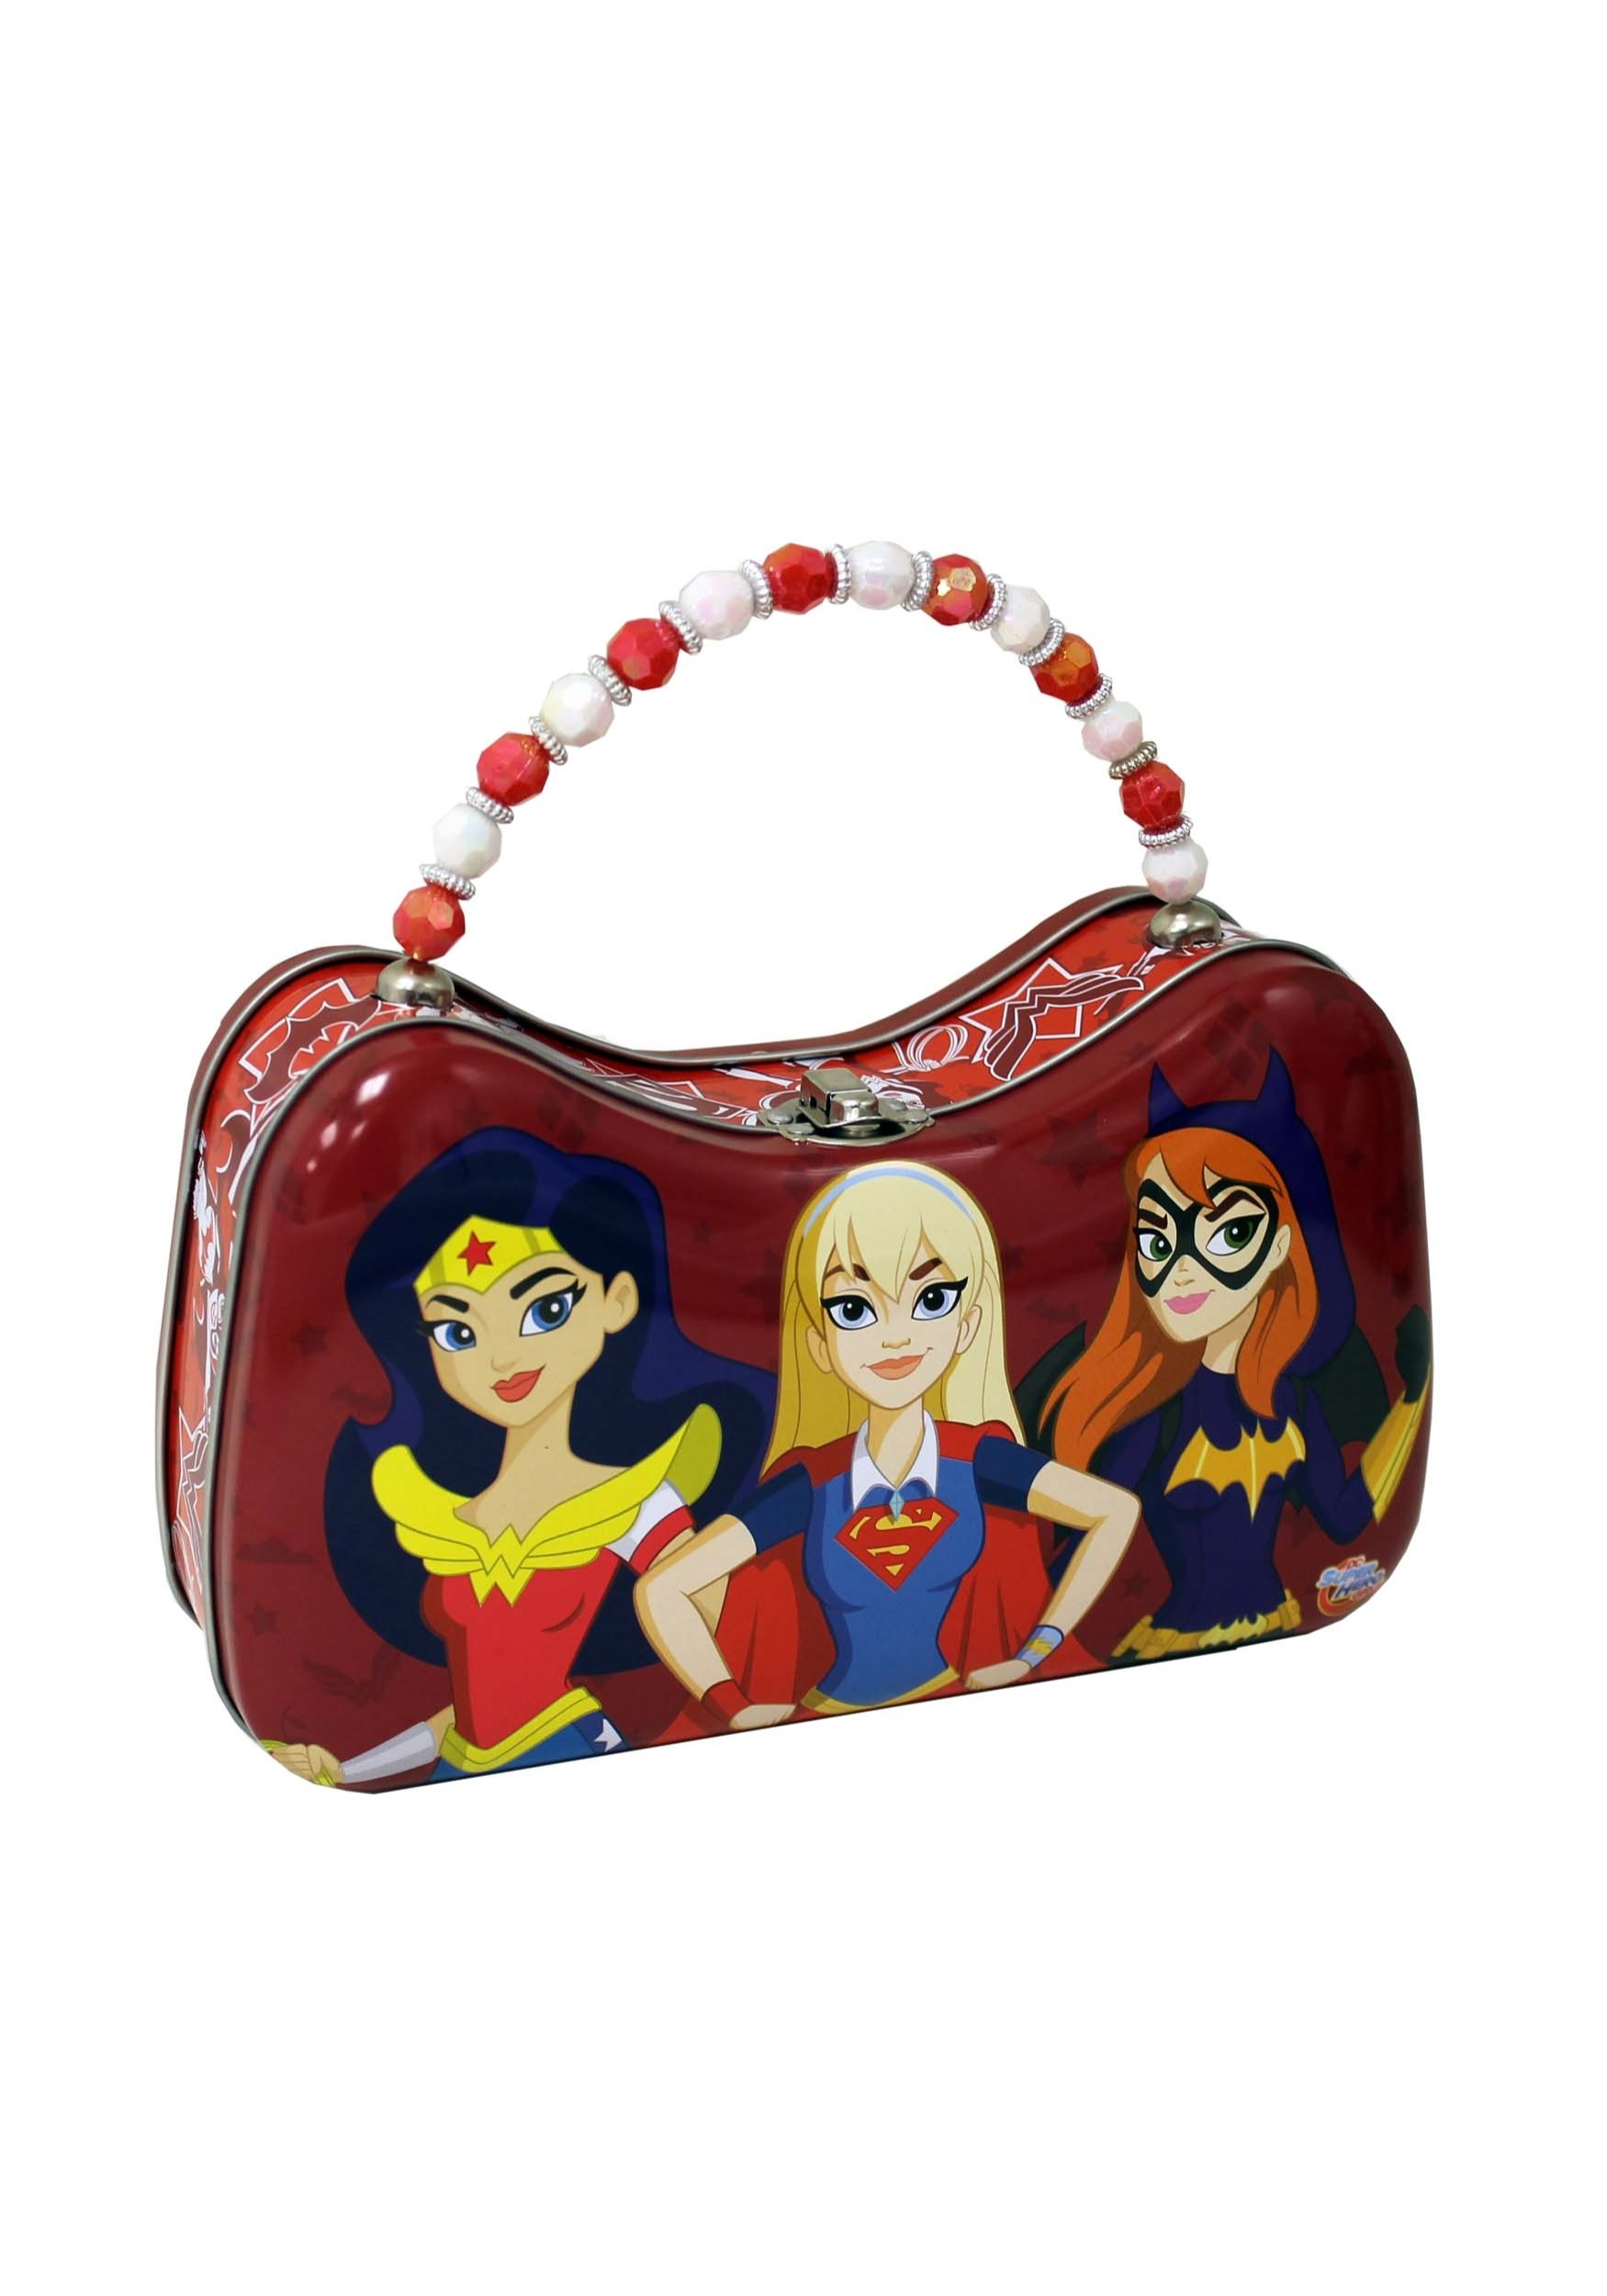 DC Super Hero Girls Tin Purse w/ Beaded Handle (TB657807-ST TB657807) photo